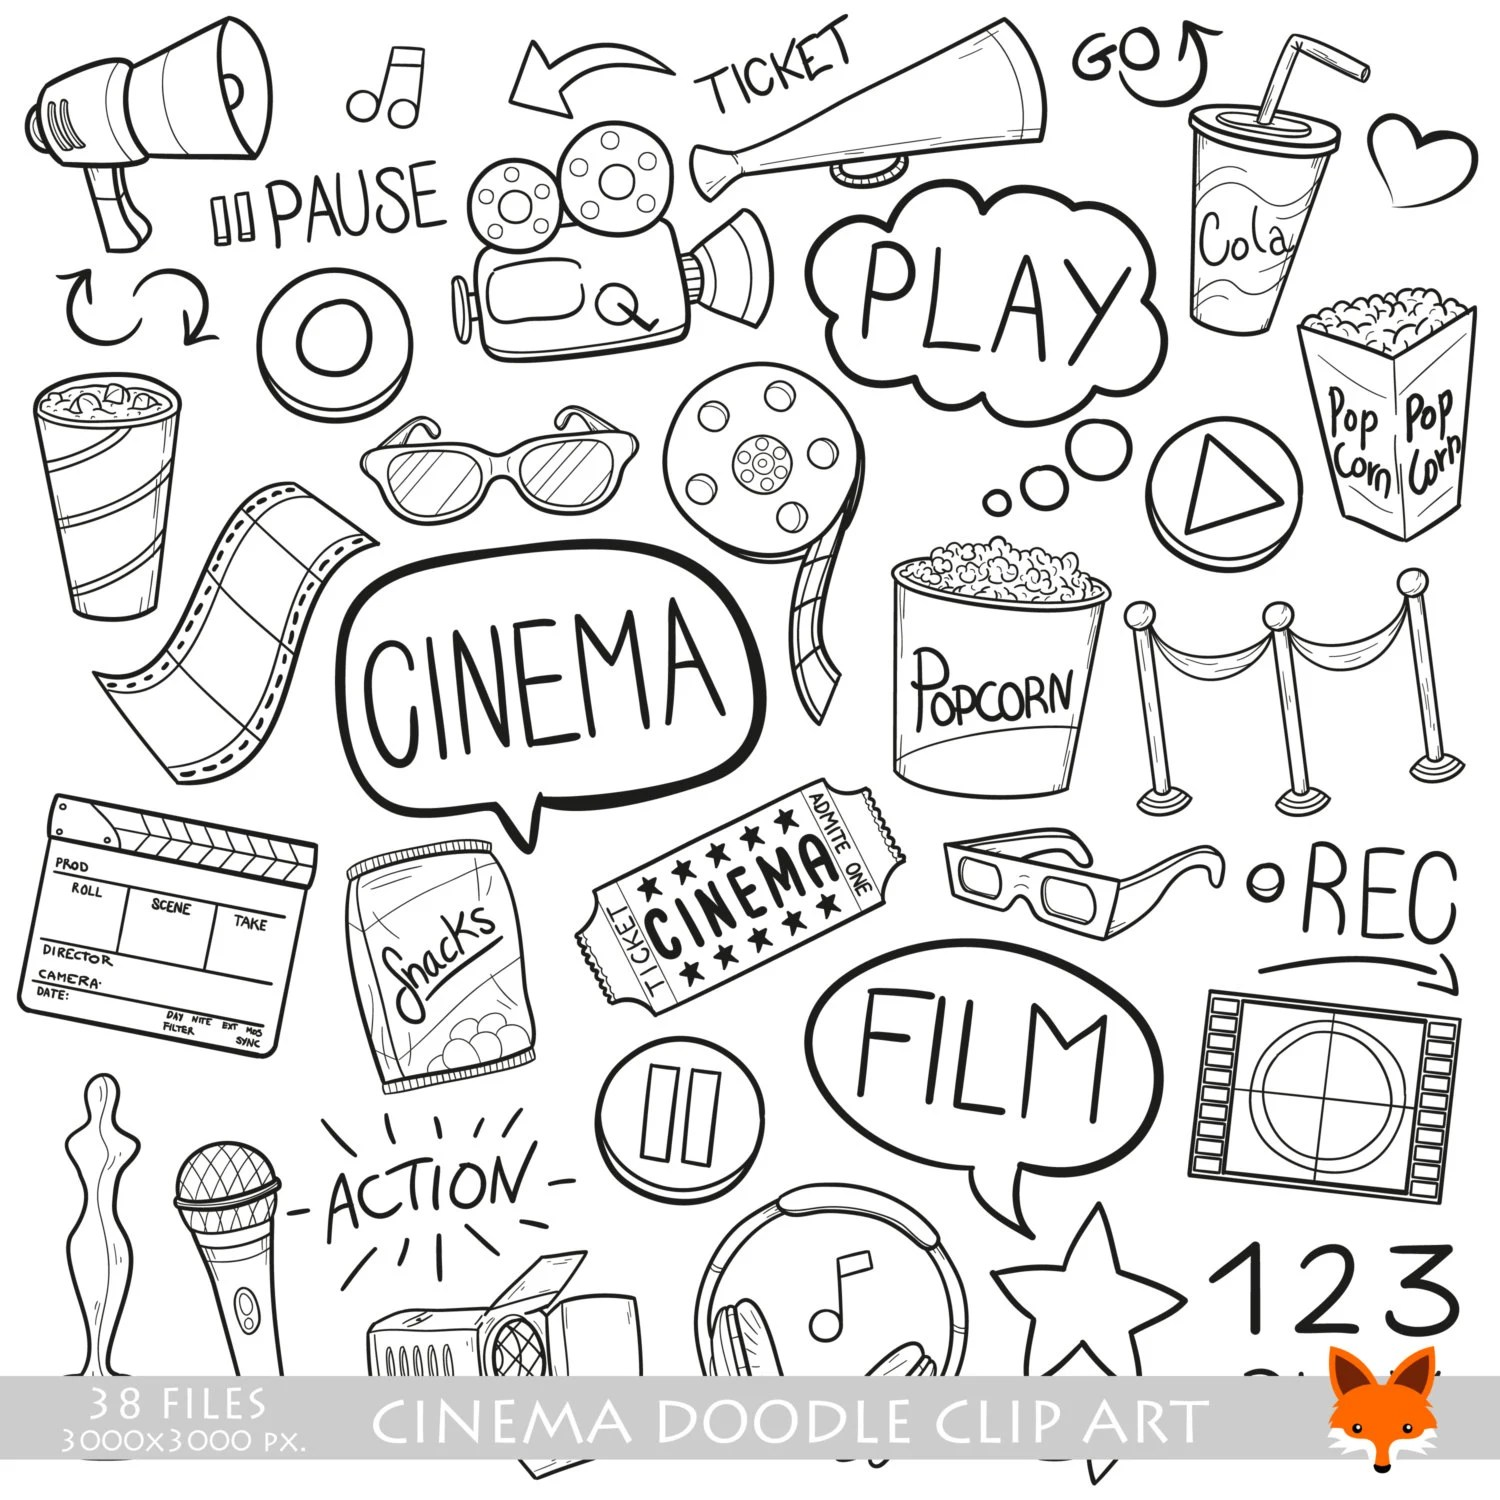 Cinema Day Film Family Friends Time Doodle Icons Clipart